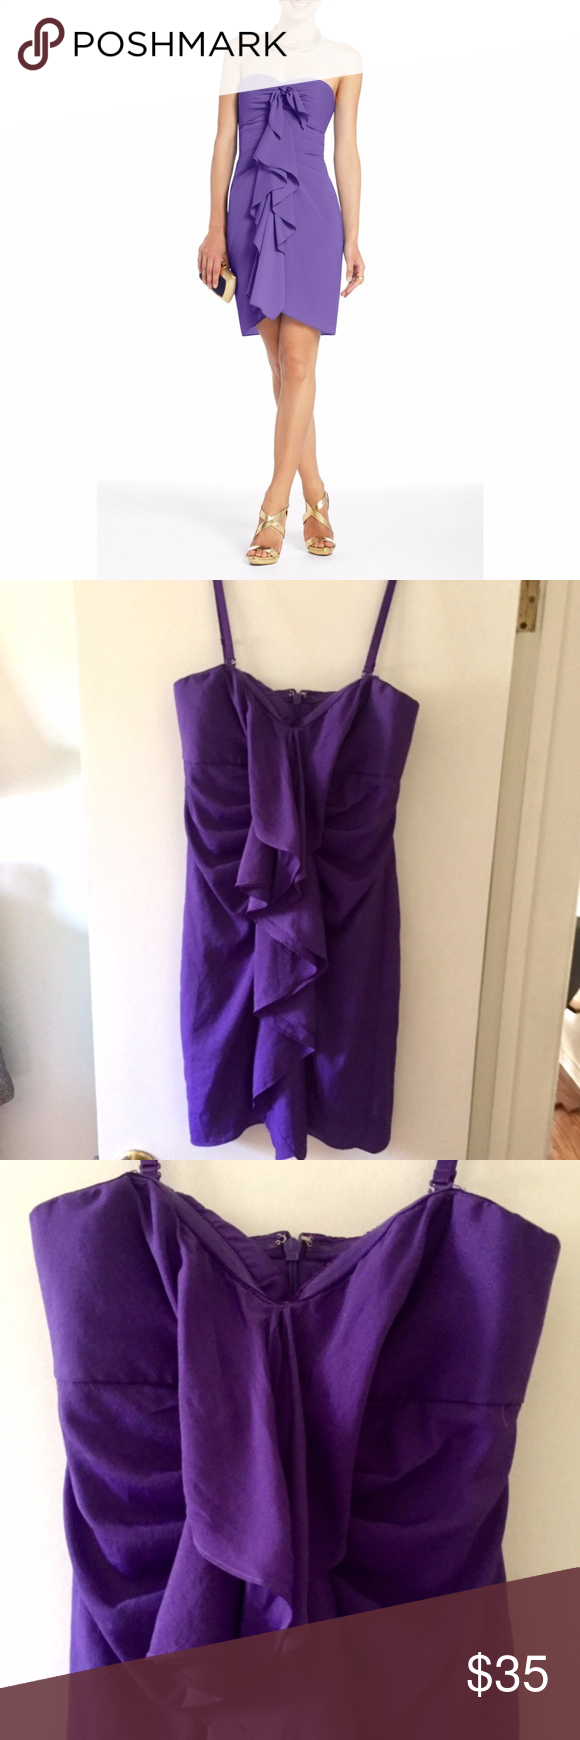 BCBG Max Azria \'Gina\' Purple Cocktail Dress Size 4 | Pinterest